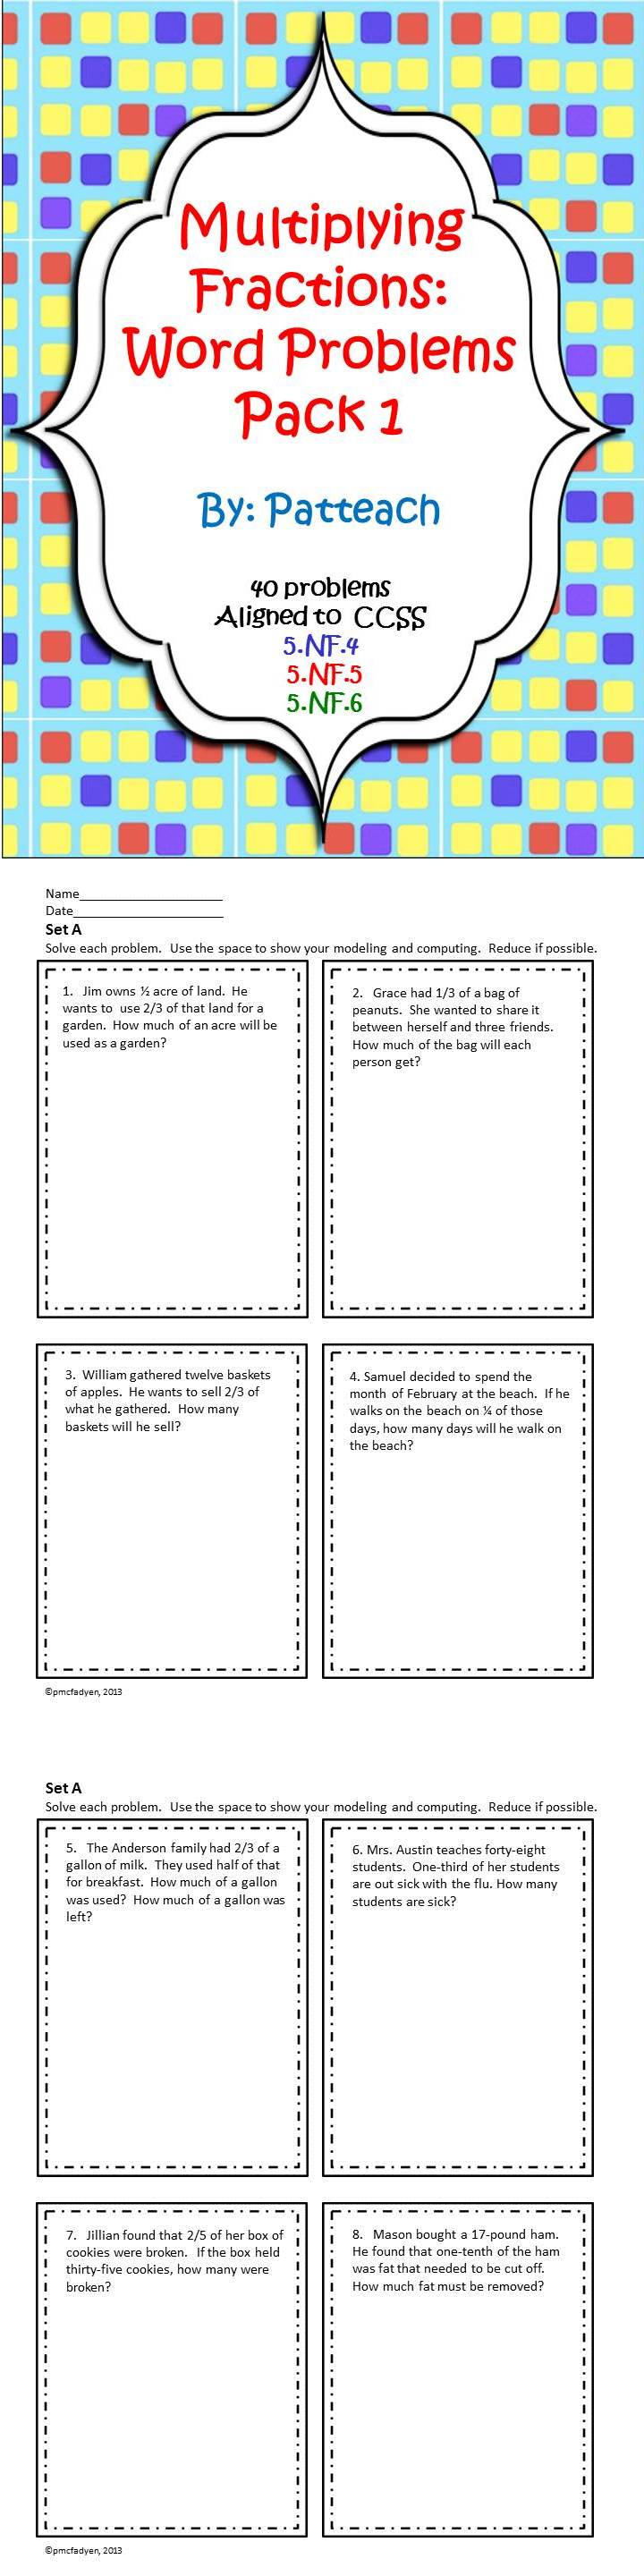 multiply fractions word problems 4th 5th grade common core math fraction word problems. Black Bedroom Furniture Sets. Home Design Ideas